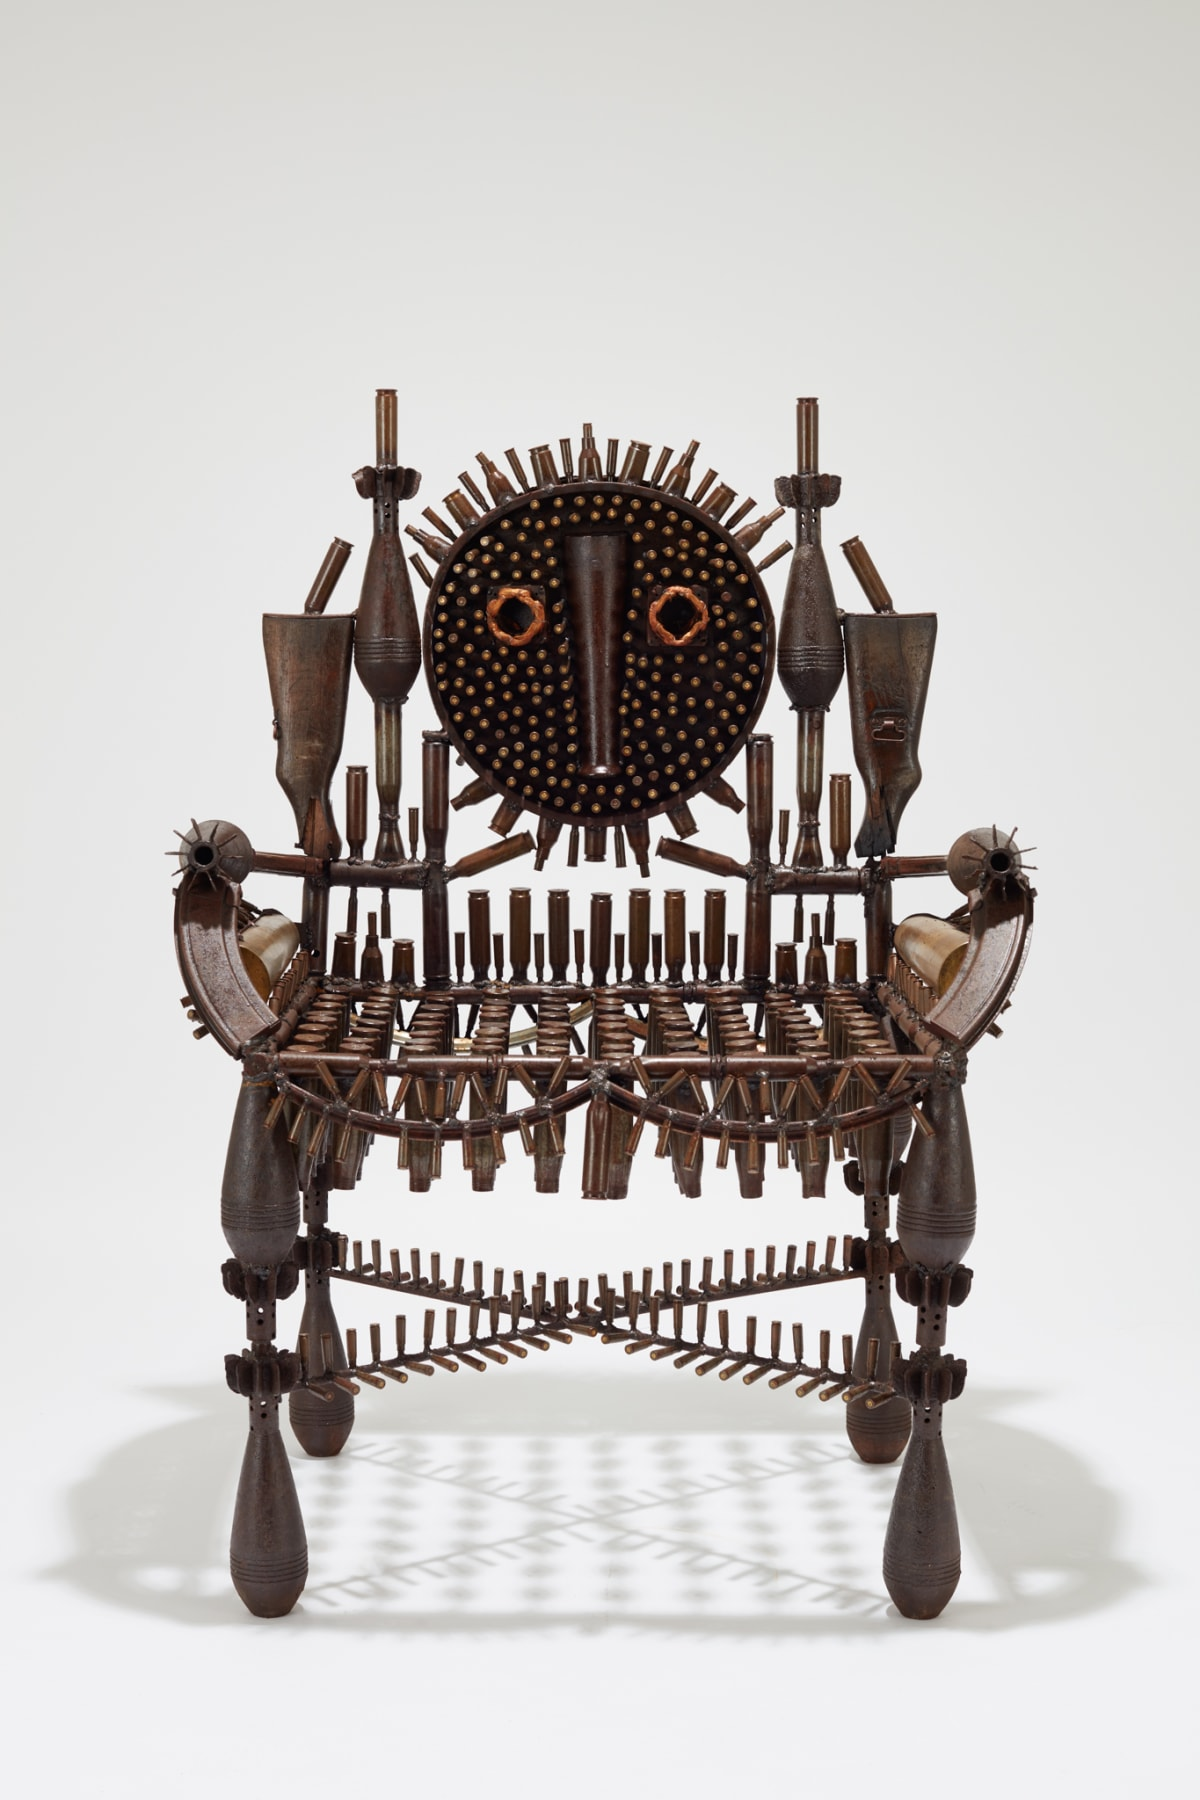 Goncalo Mabunda, The Captivating Throne, 2019